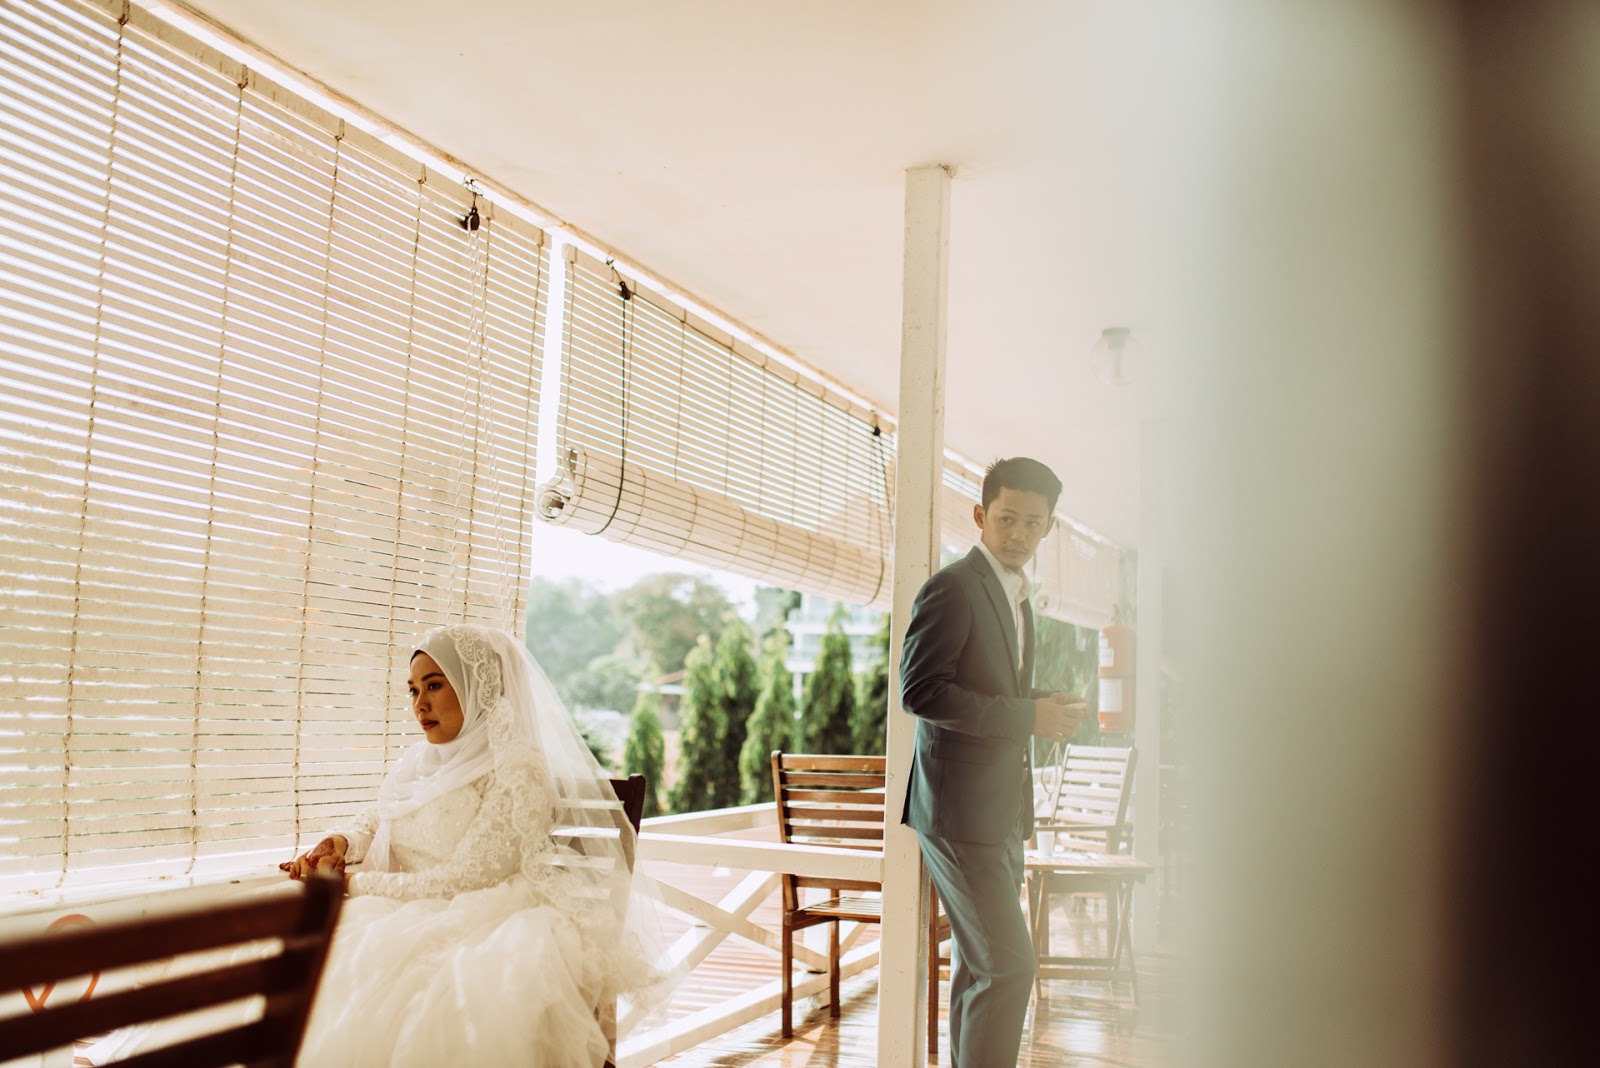 Agus + Nora | 17 Mac 2019 | Post Wedding